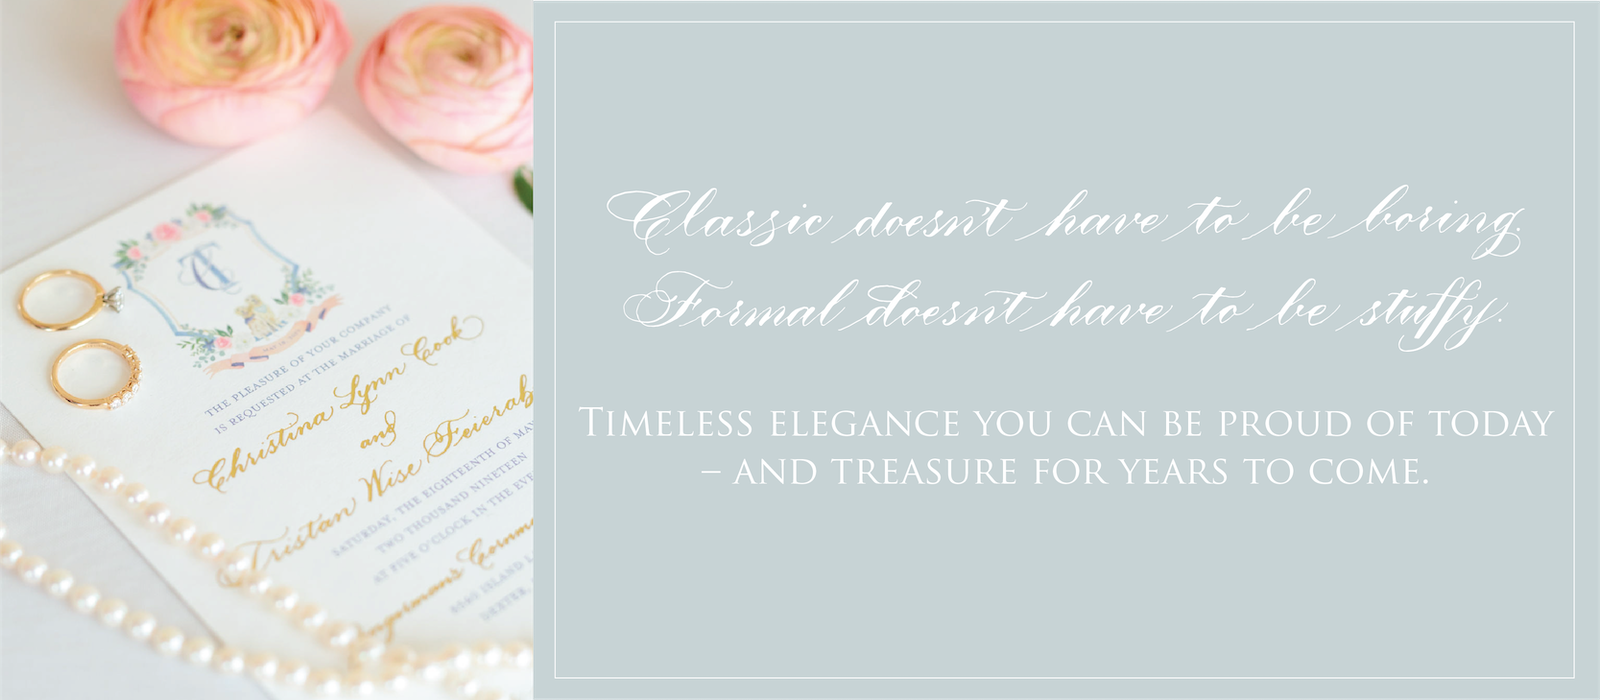 Classic doesn't have to be boring - Leah E. Moss Designs